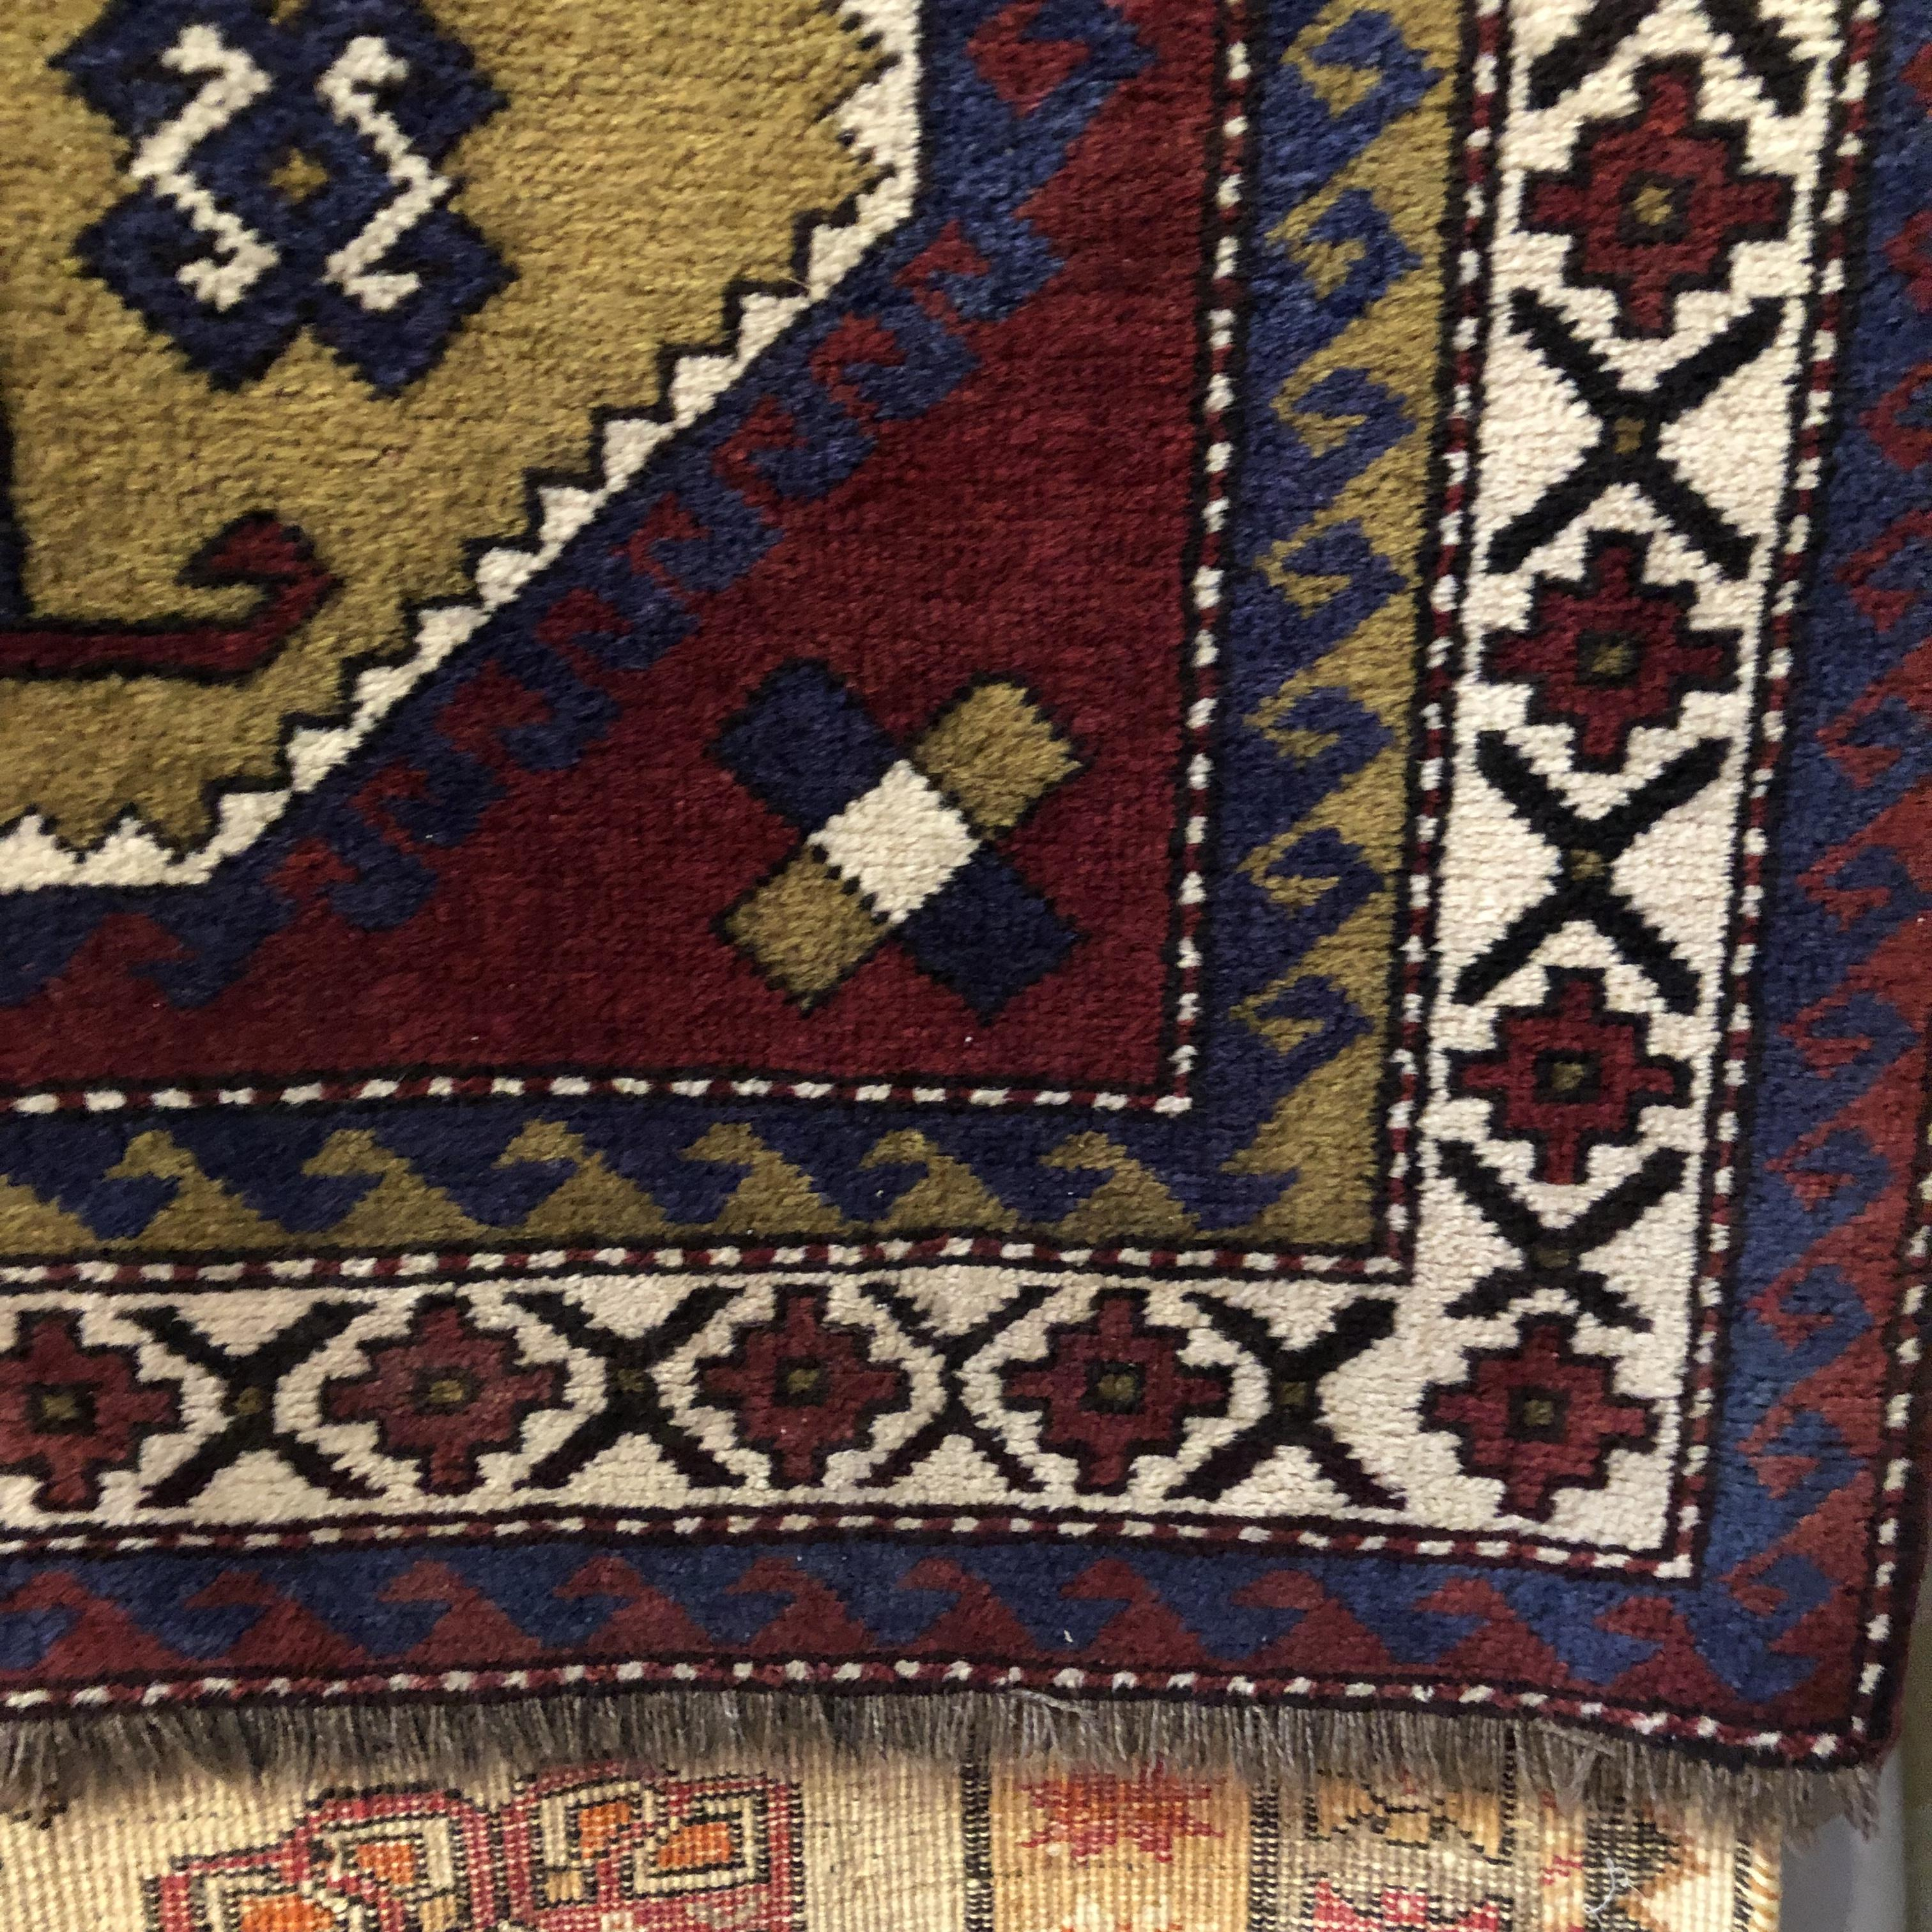 London Antique Rug Textile Art Fair: Old Hand Knotted Afghan Rug Double Medalion Design